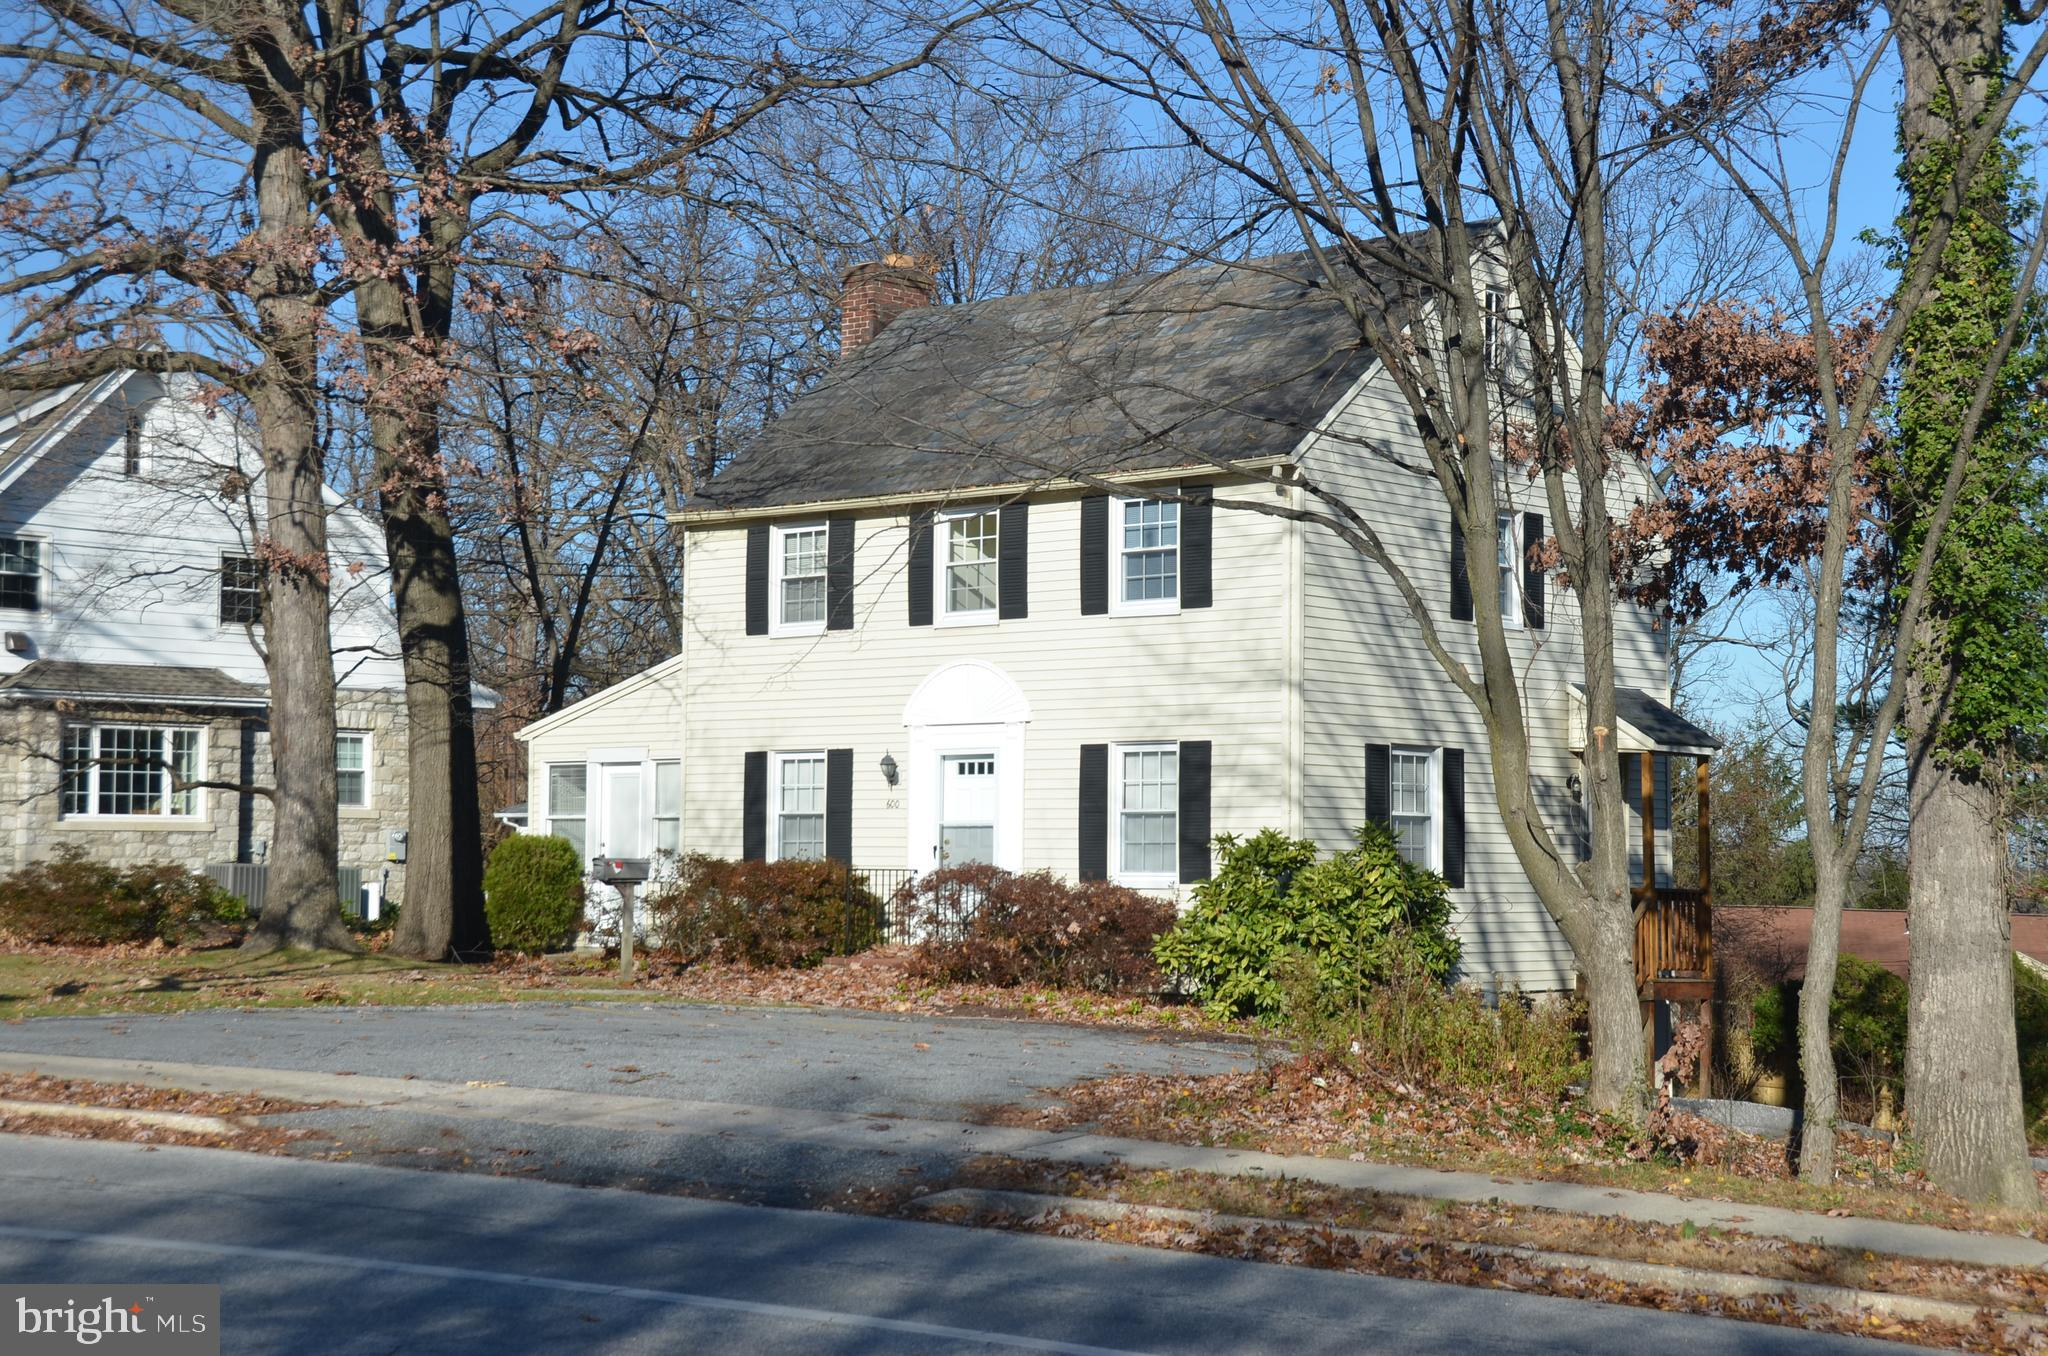 600 PROVIDENCE ROAD, TOWSON, MD 21204